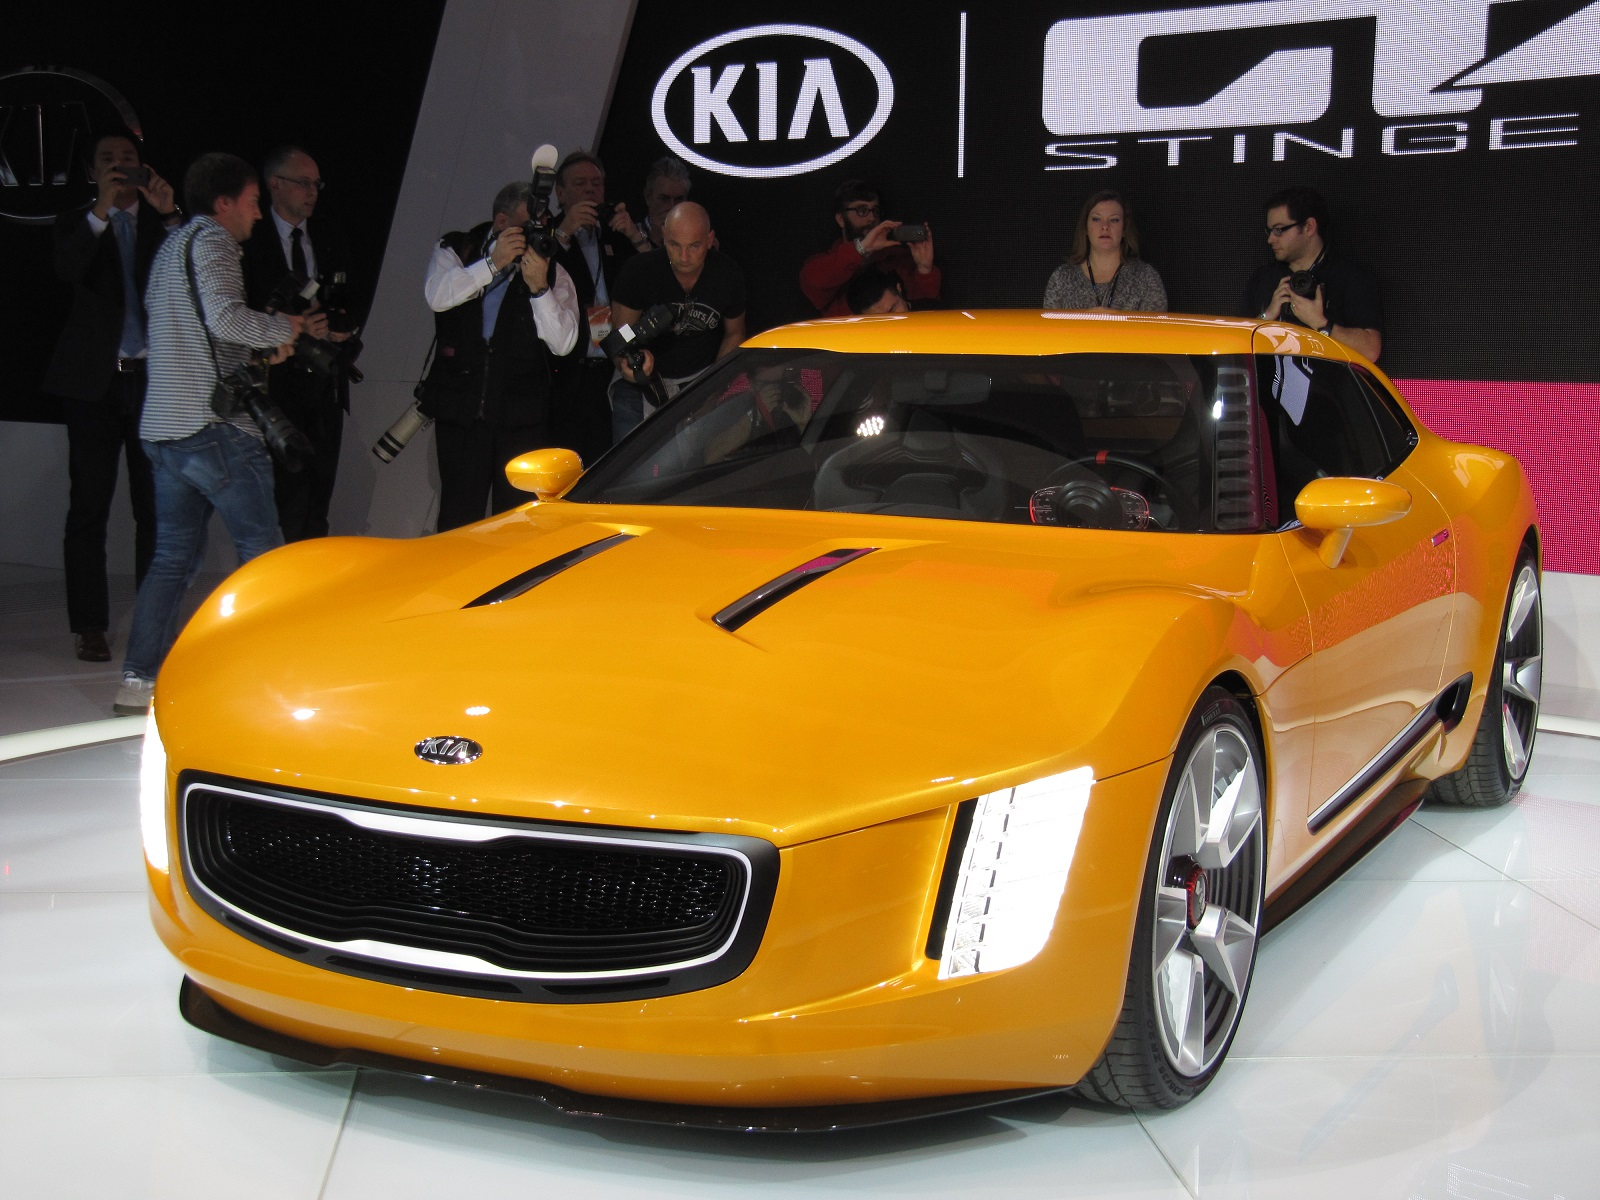 kia gt4 stinger concept debuts at 2014 detroit auto show. Black Bedroom Furniture Sets. Home Design Ideas